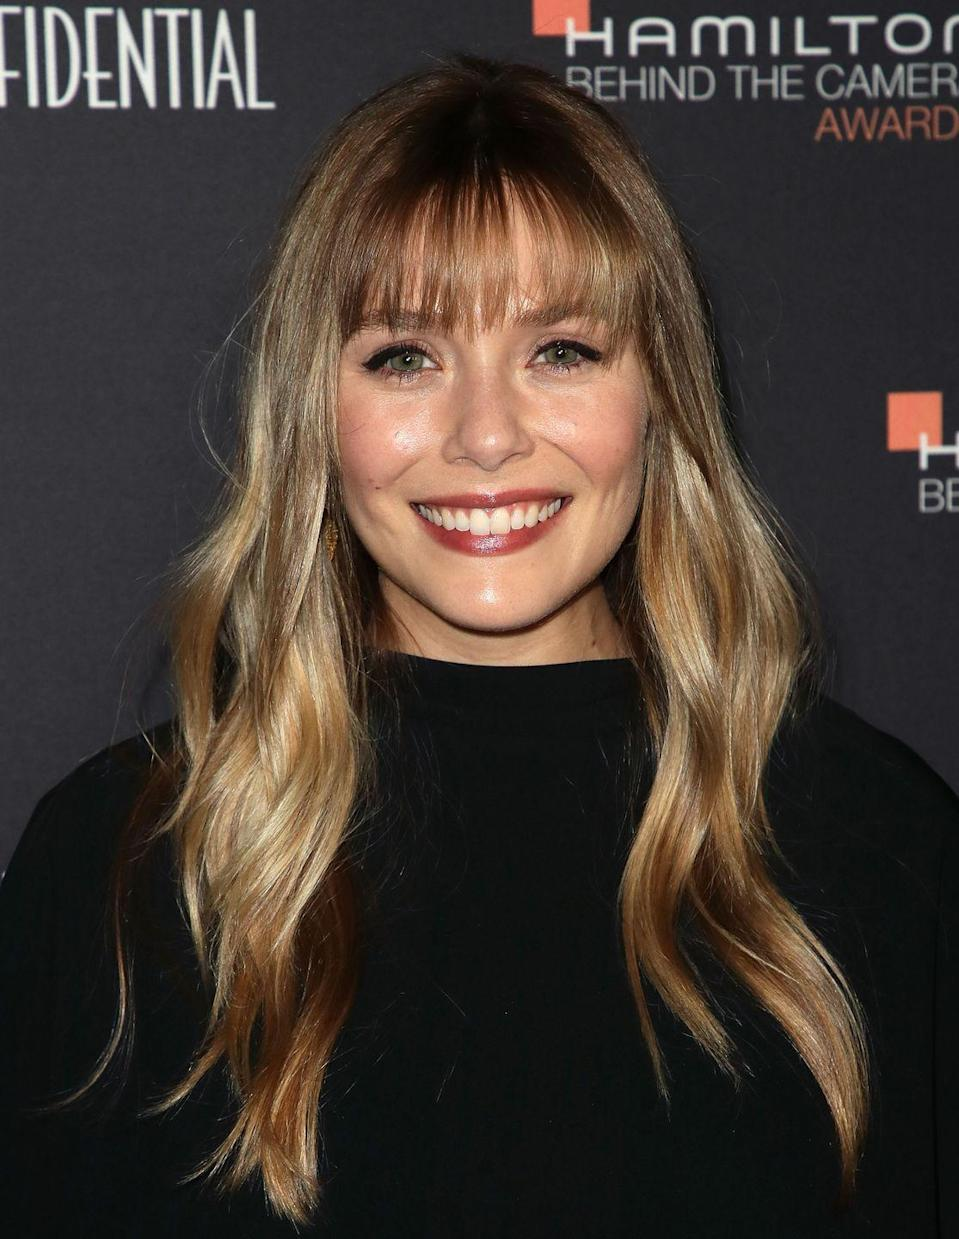 <p>The actress debuted a new eyebrow-skimming fringe at the 'Hamilton Behind The Camera Awards'. The 29-year-old gave her seriously shiny long blonde hair a choppy fringe update and just went straight on to our Pinterest boards.</p>